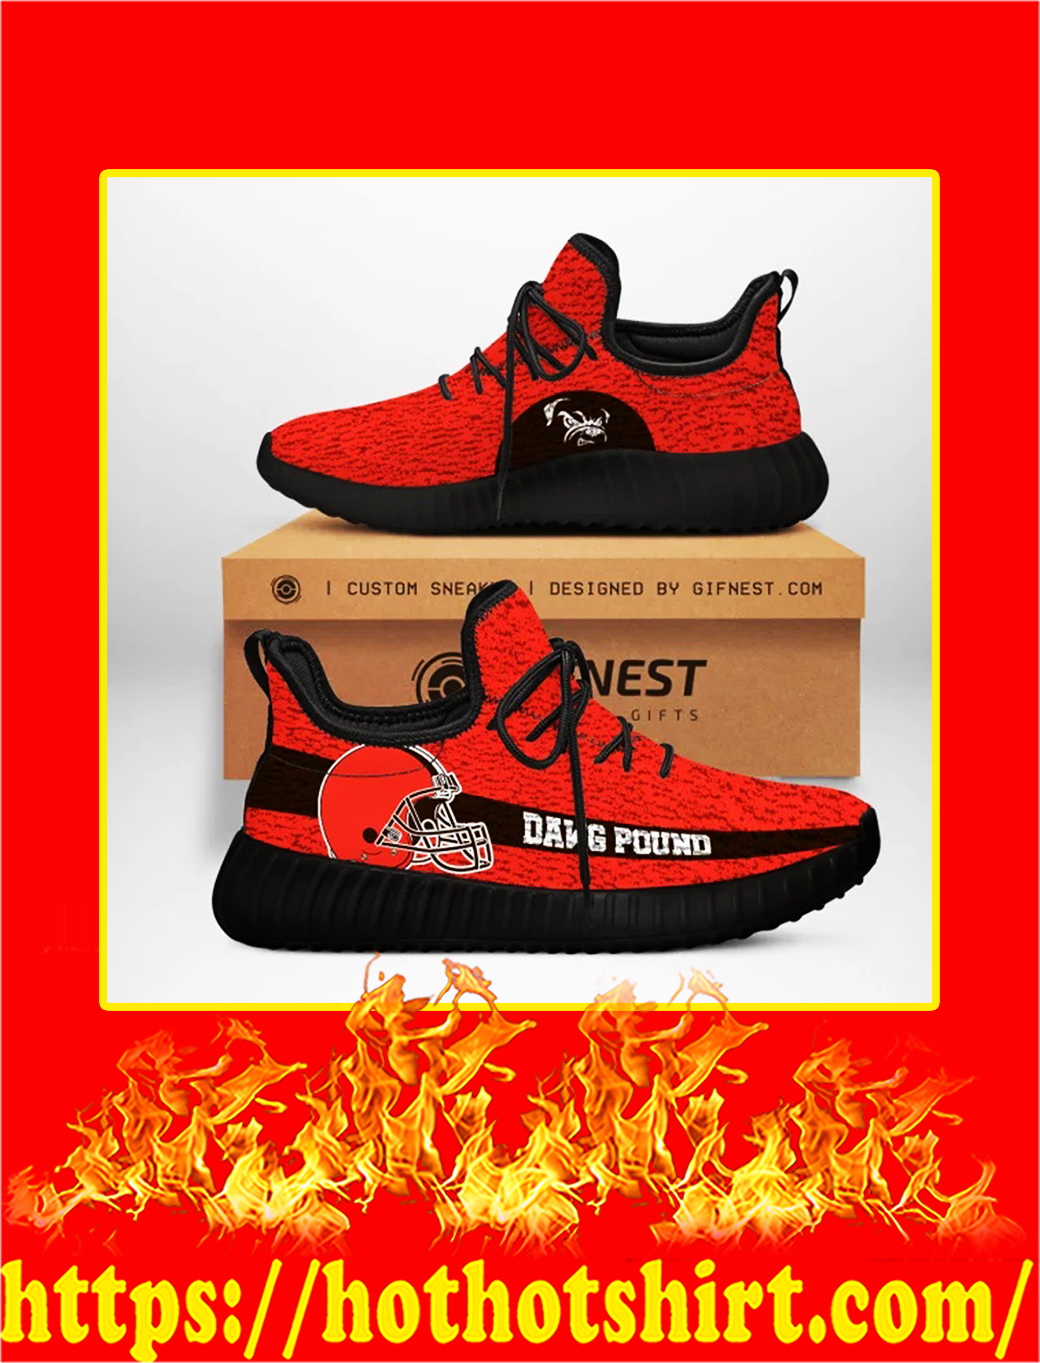 Dawg Pound Cleveland Browns NFL Yeezy Sneaker - white